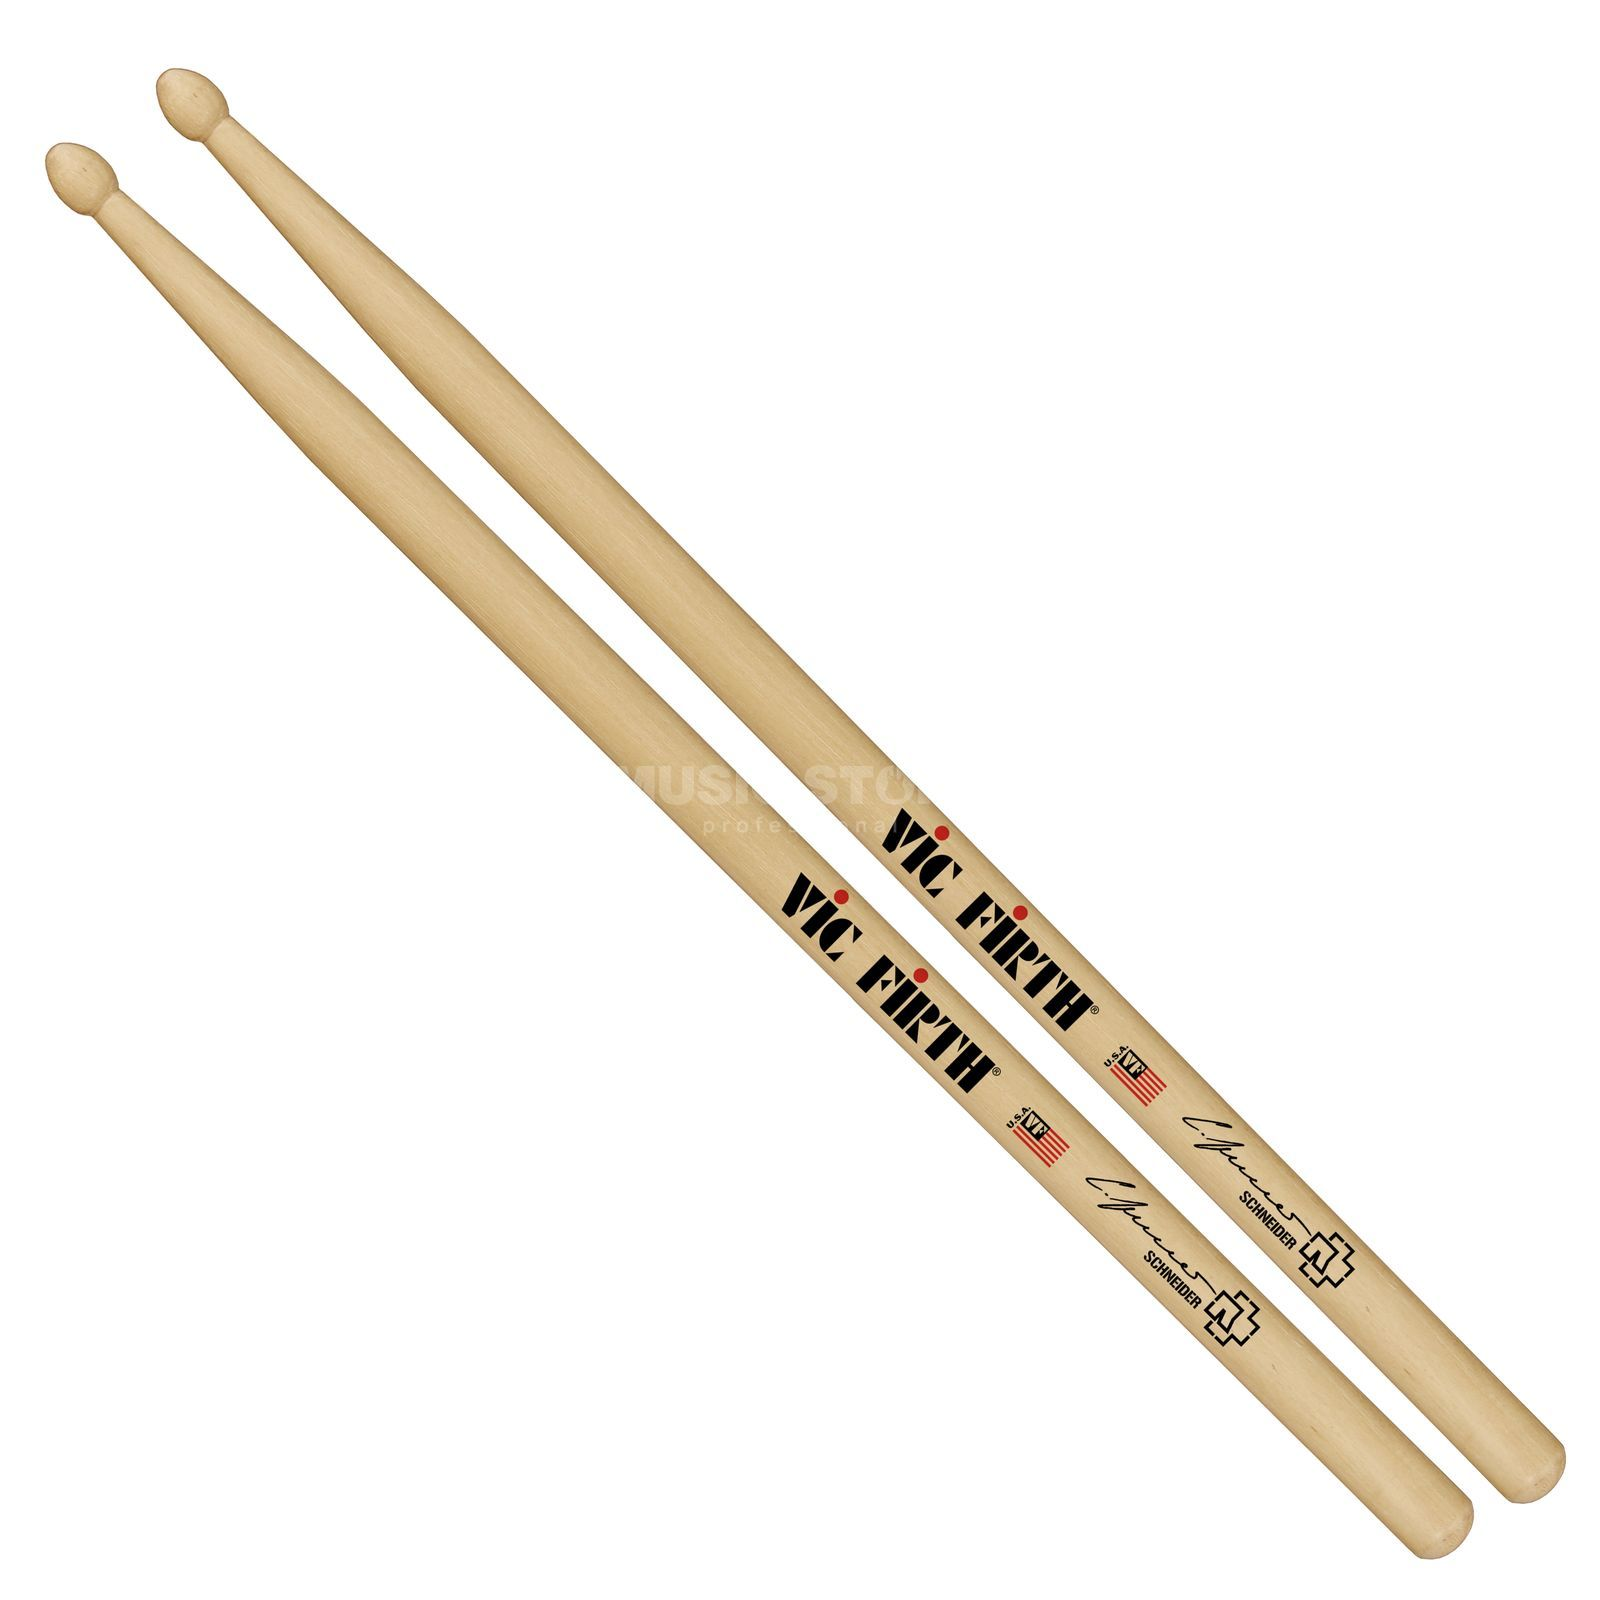 Vic-Firth Christoph Schneider Sticks SCS Signature Series Produktbild